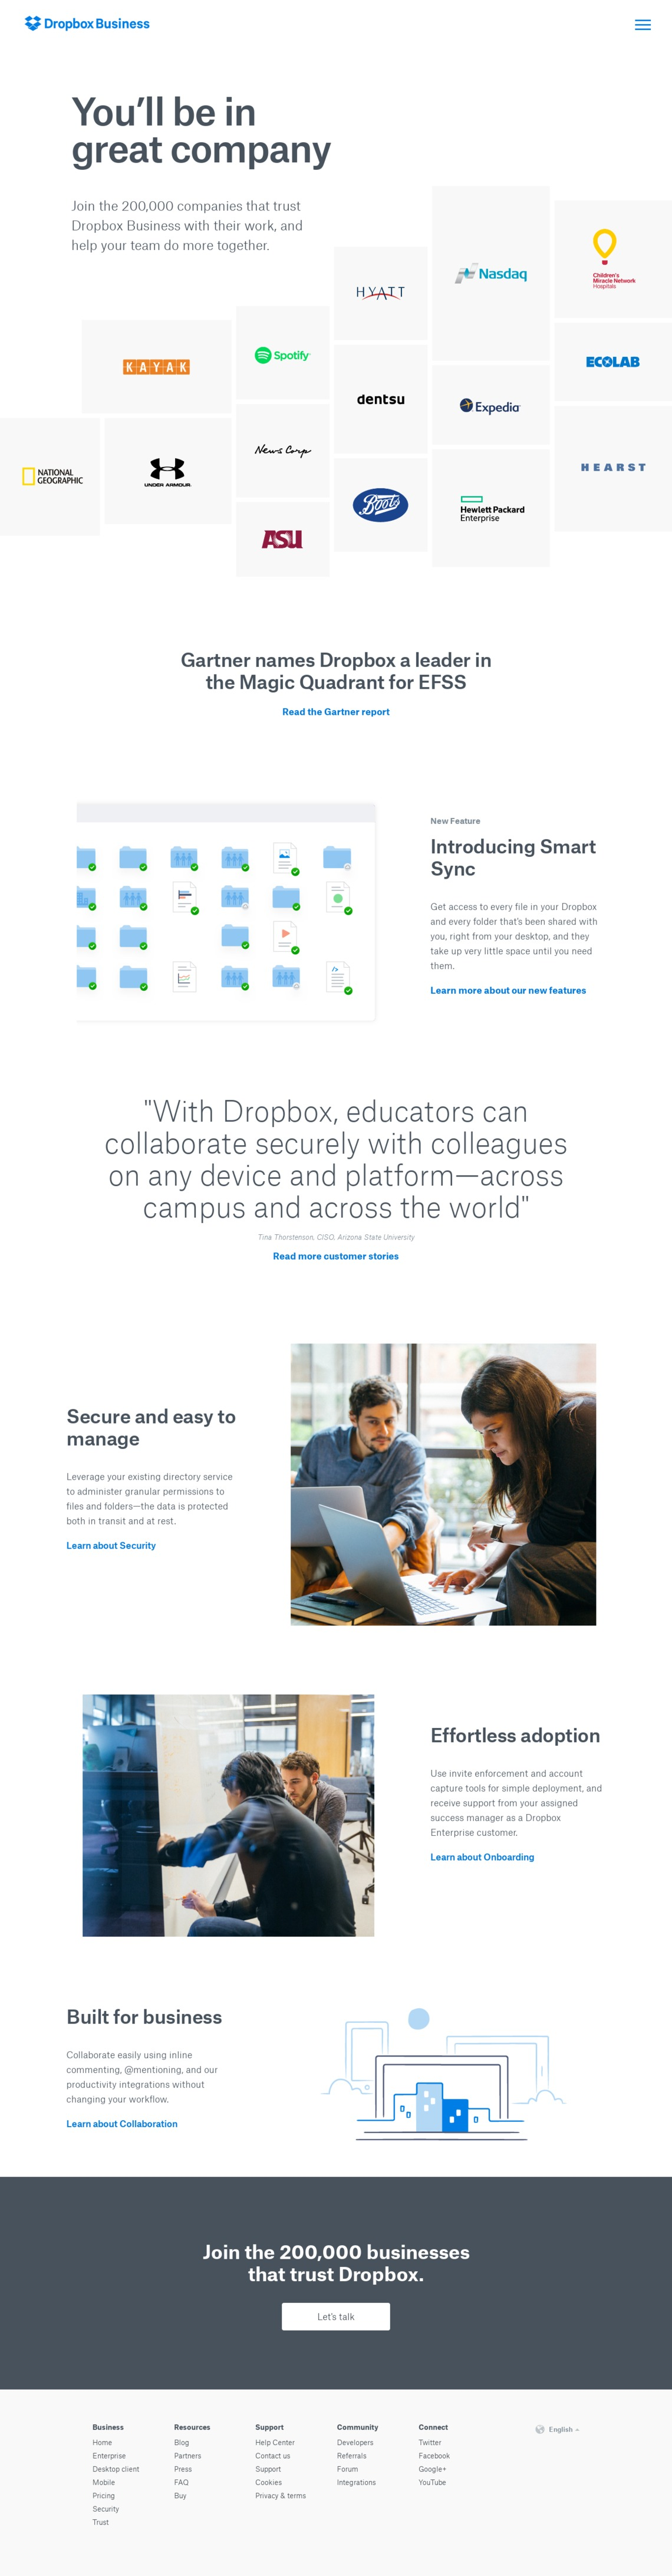 Enterprise File Sync and Share - EFSS - Dropbox Business